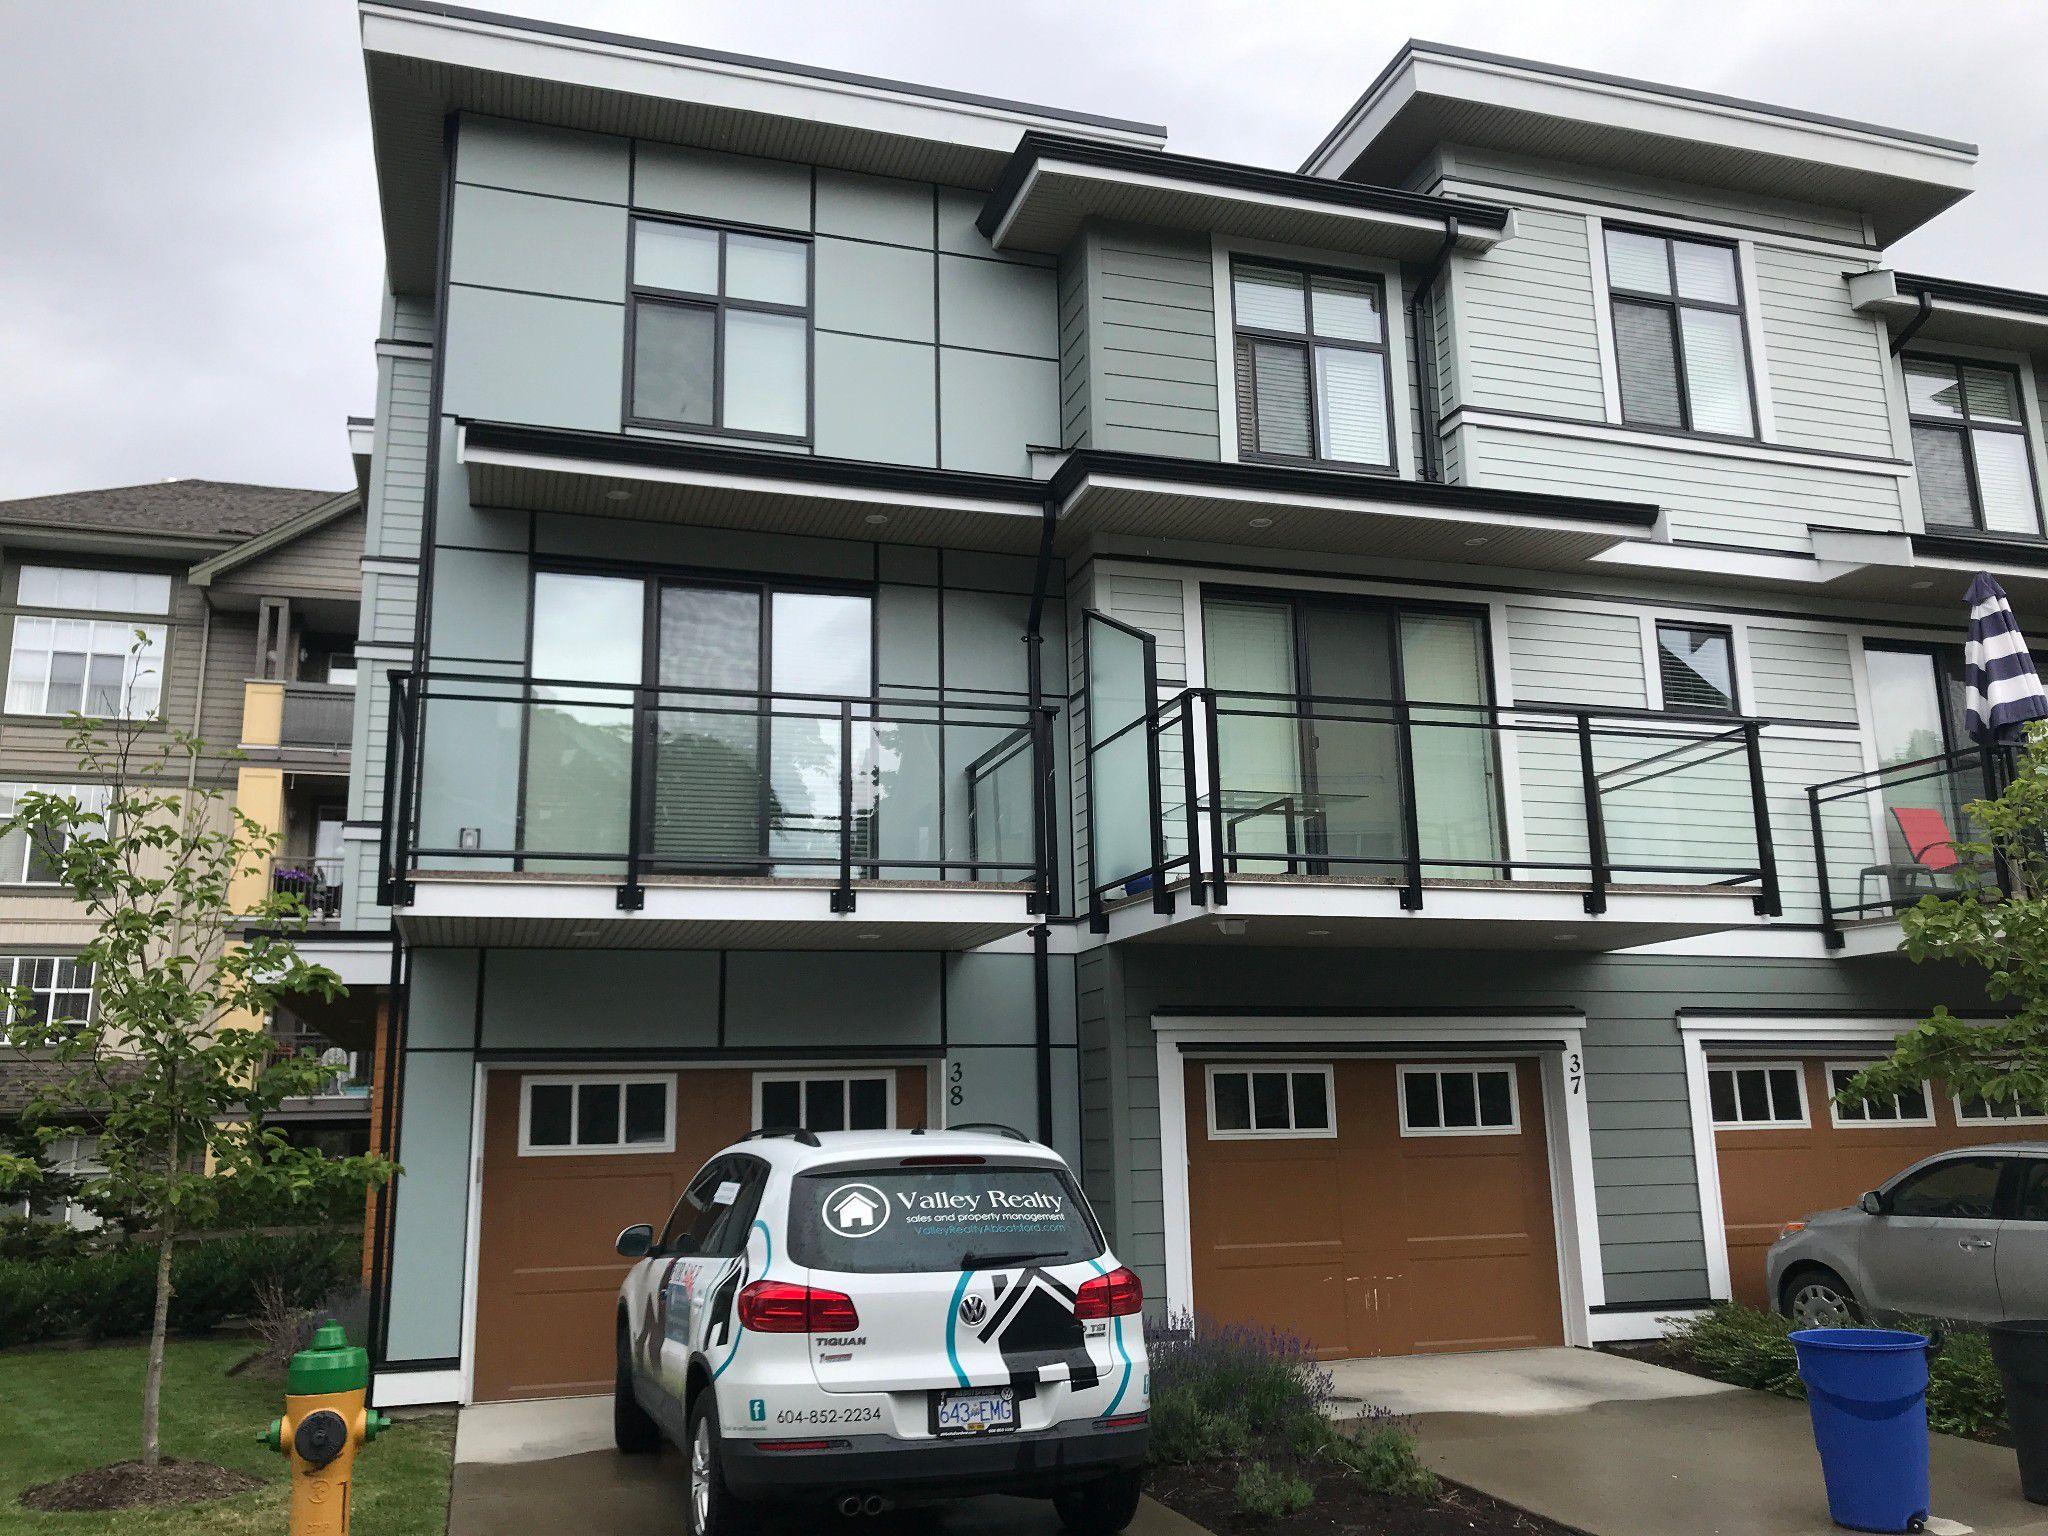 Main Photo: #38 45615 Tamihi Way in Chilliwack: Garrison Crossing Townhouse for rent